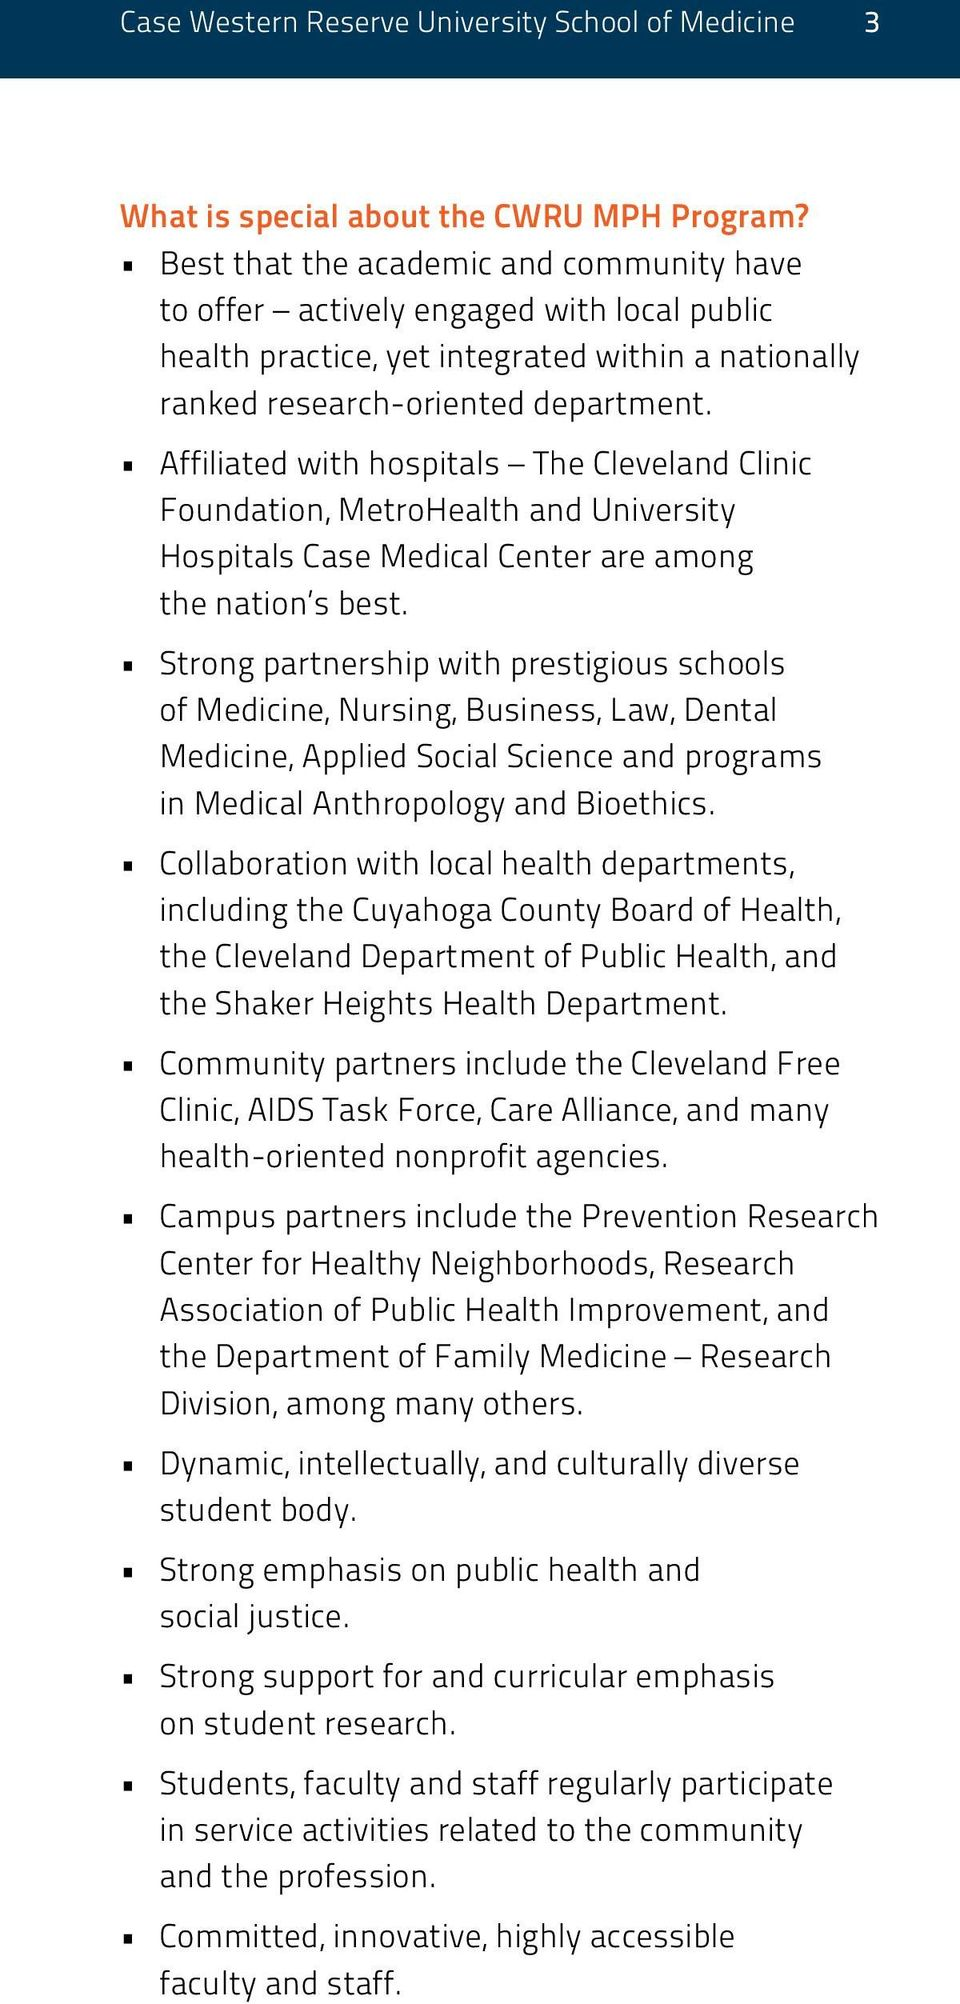 Affiliated with hospitals The Cleveland Clinic Foundation, MetroHealth and University Hospitals Case Medical Center are among the nation s best.